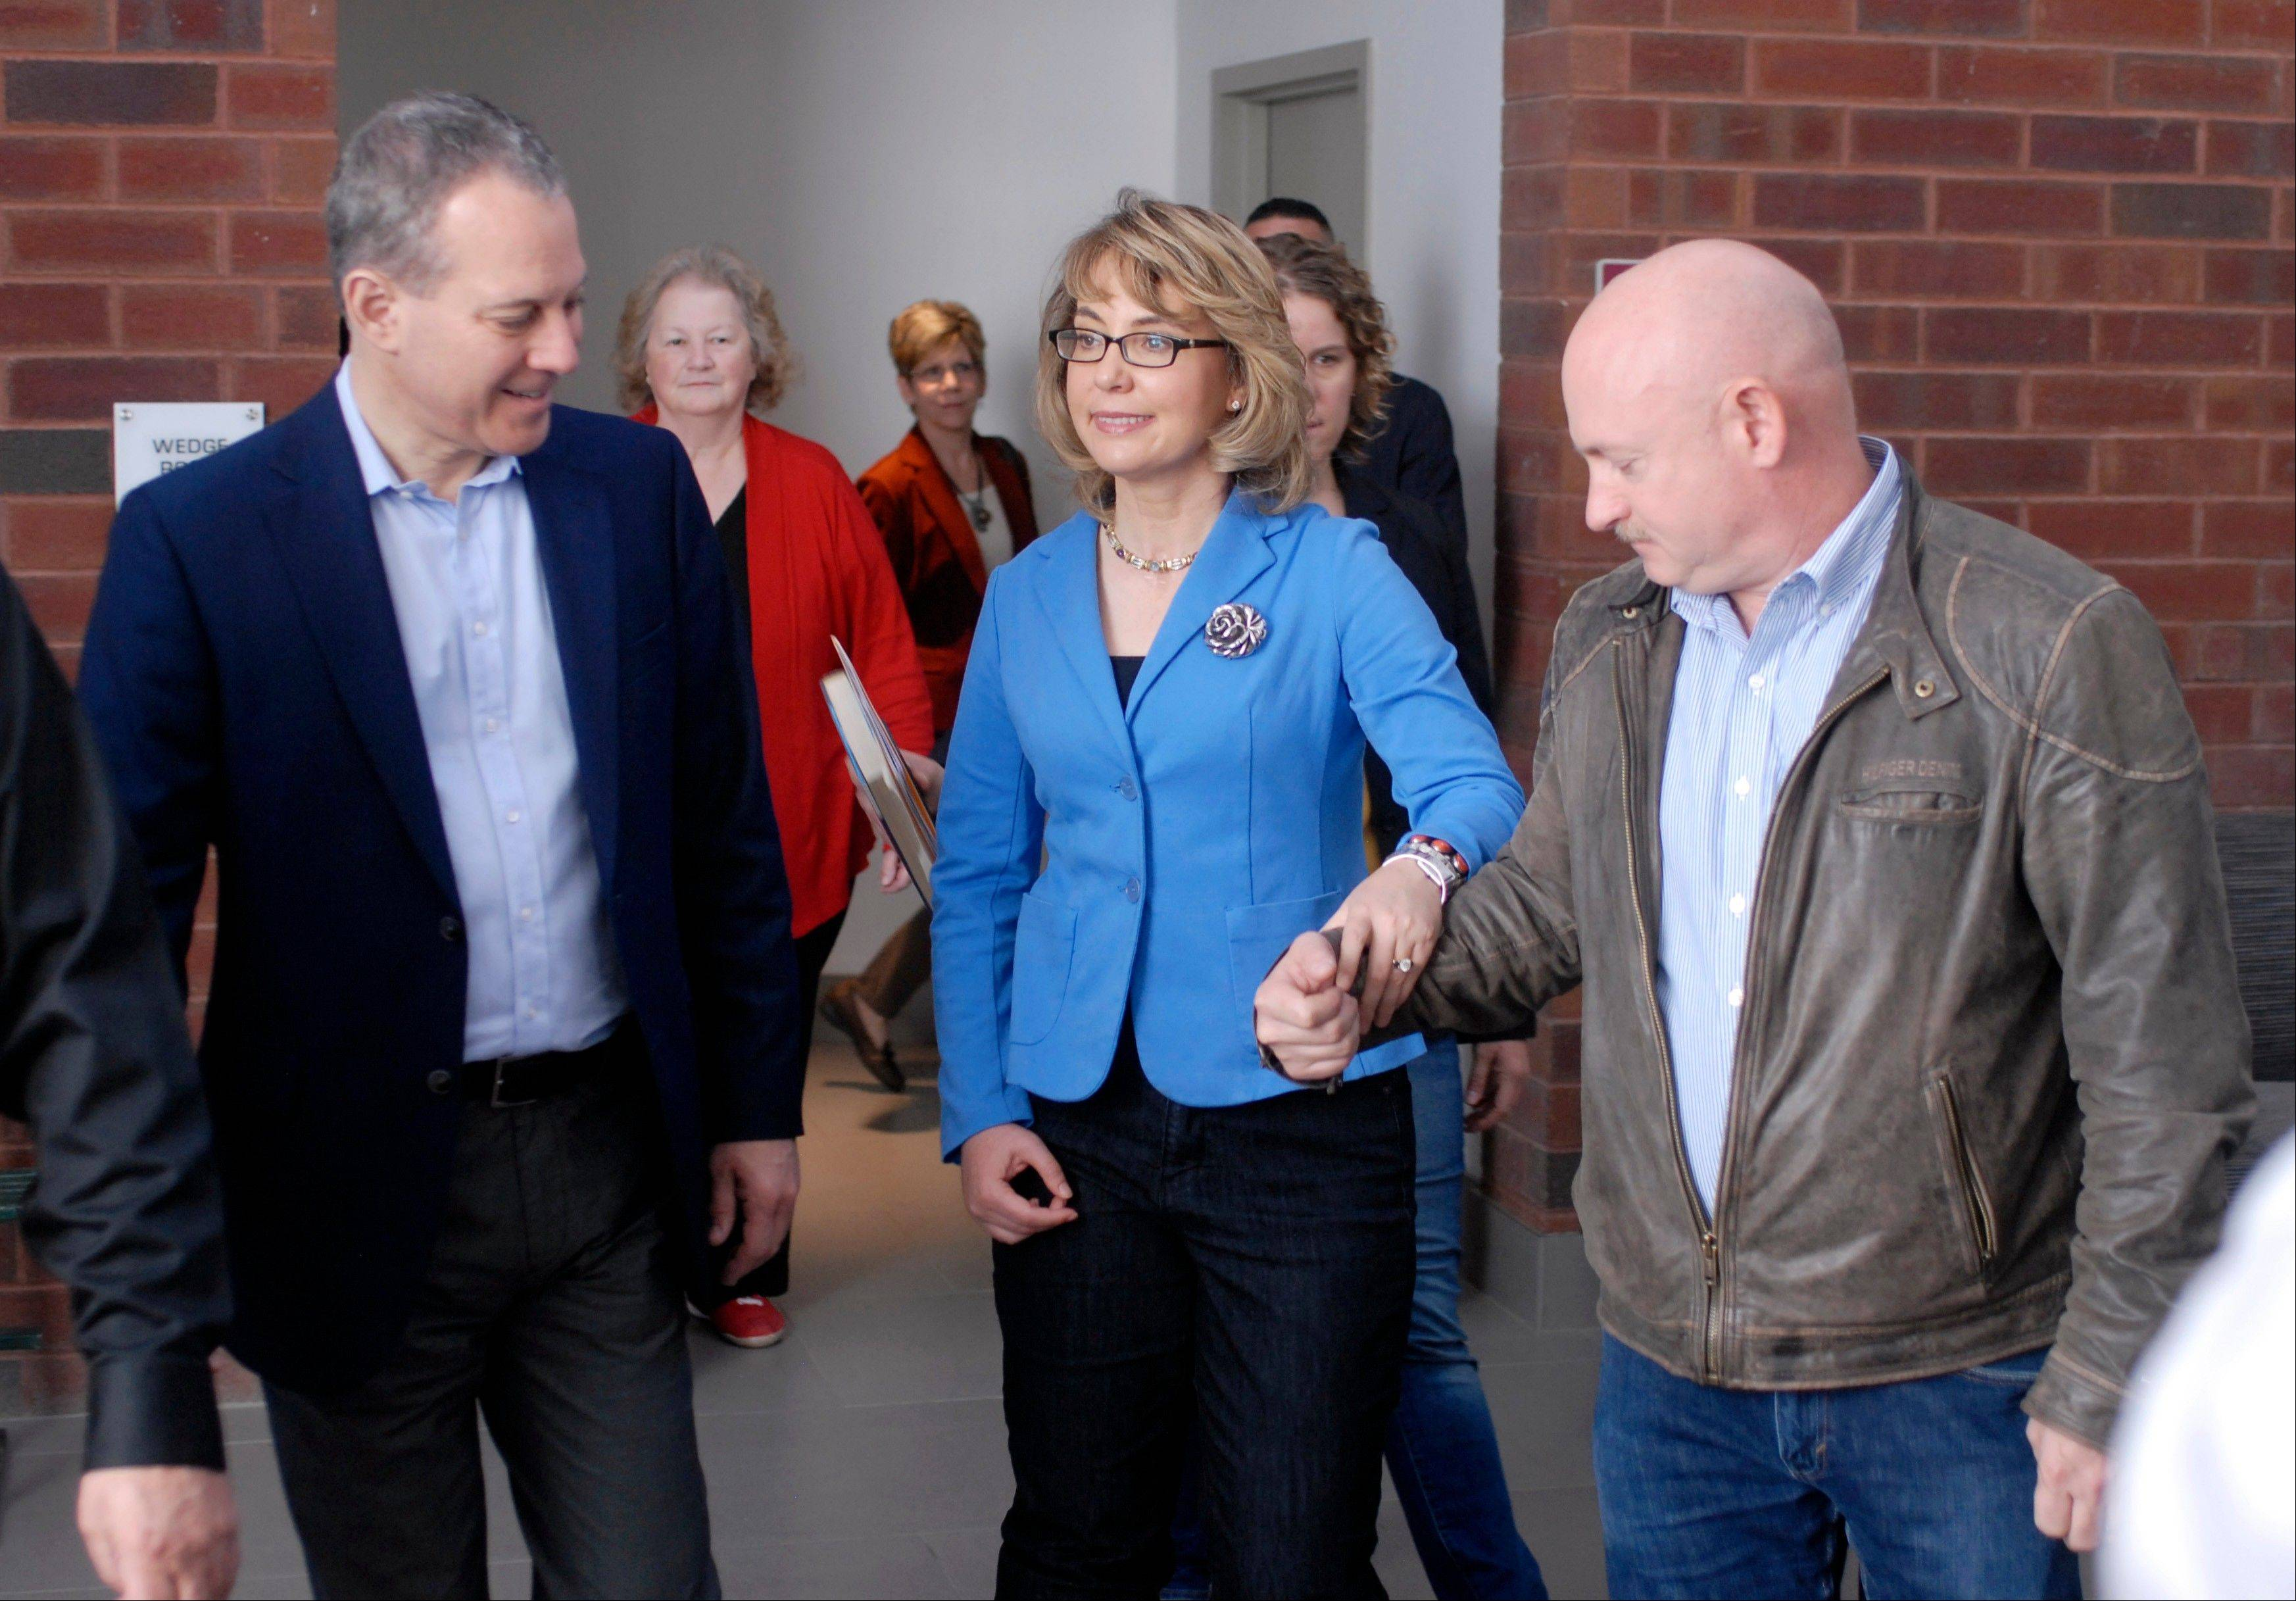 New York Attorney General Eric Schneiderman, left, former U.S. Rep Gabrielle Giffords, center, and her husband, Mark Kelly, arrive for a tour of the New EastCoast Arms Collectors Associates arms fair in Saratoga Springs, N.Y. on Sunday.